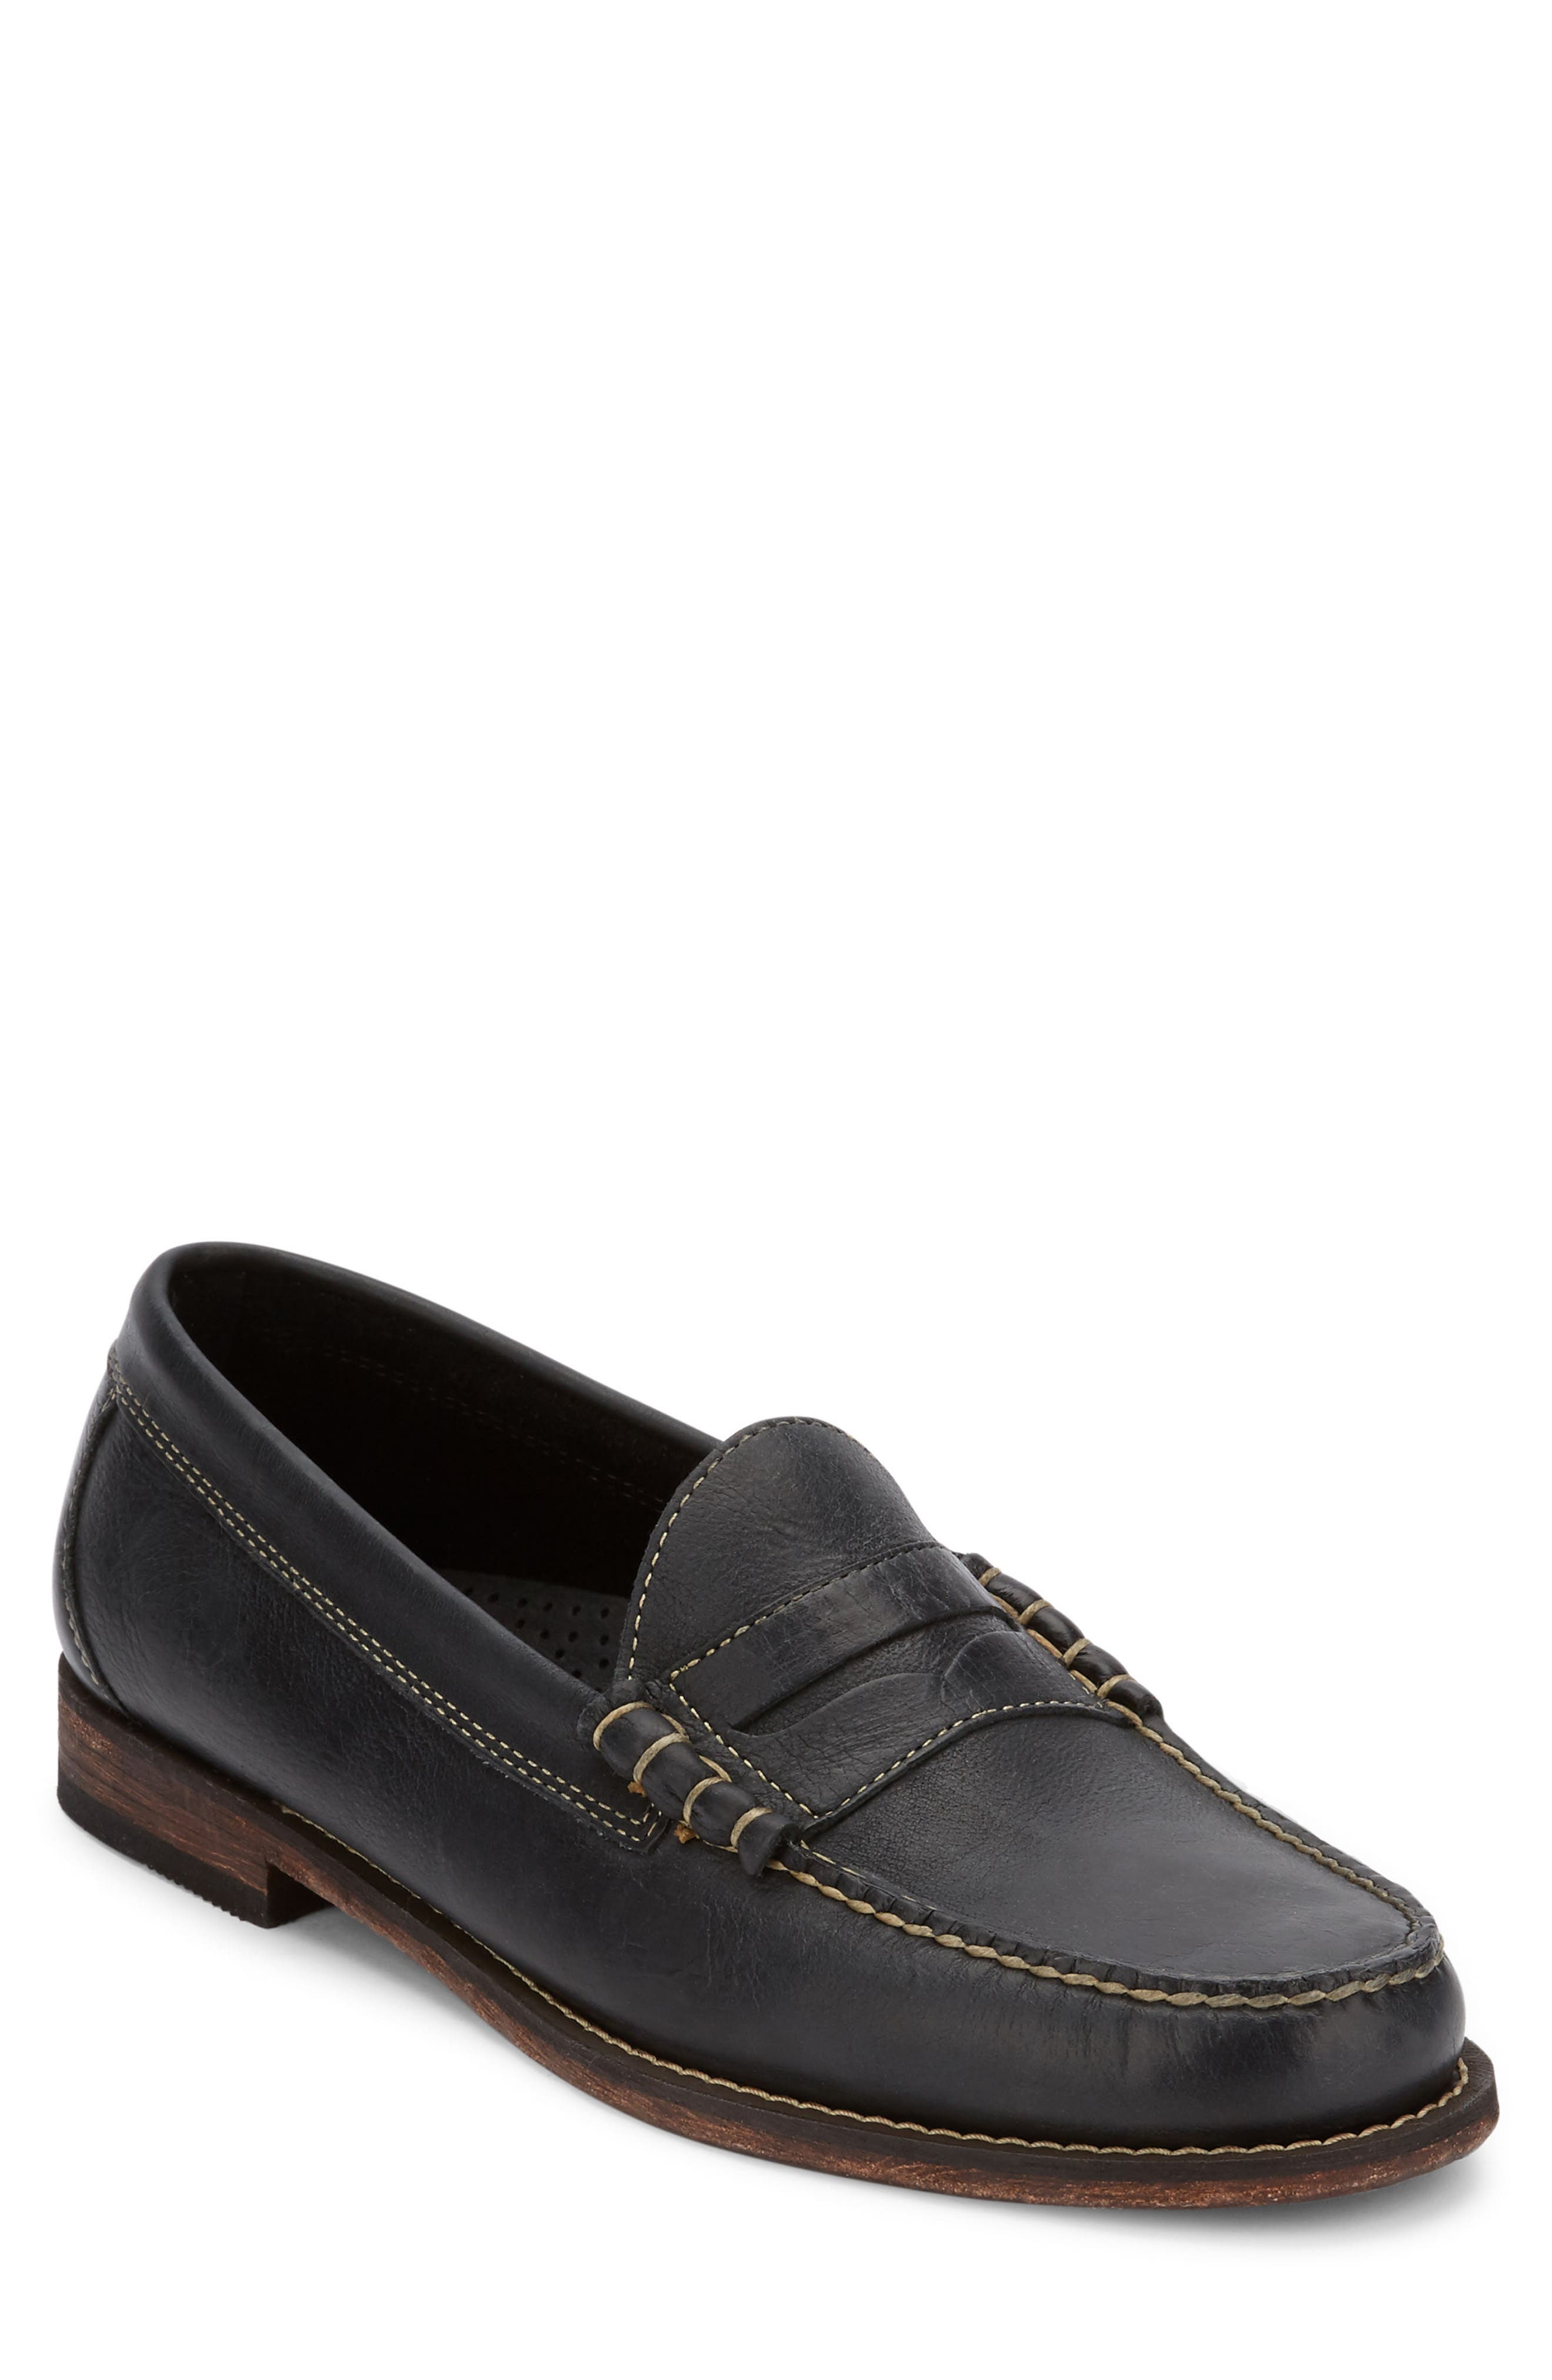 Hayden Penny Loafer,                             Main thumbnail 1, color,                             001